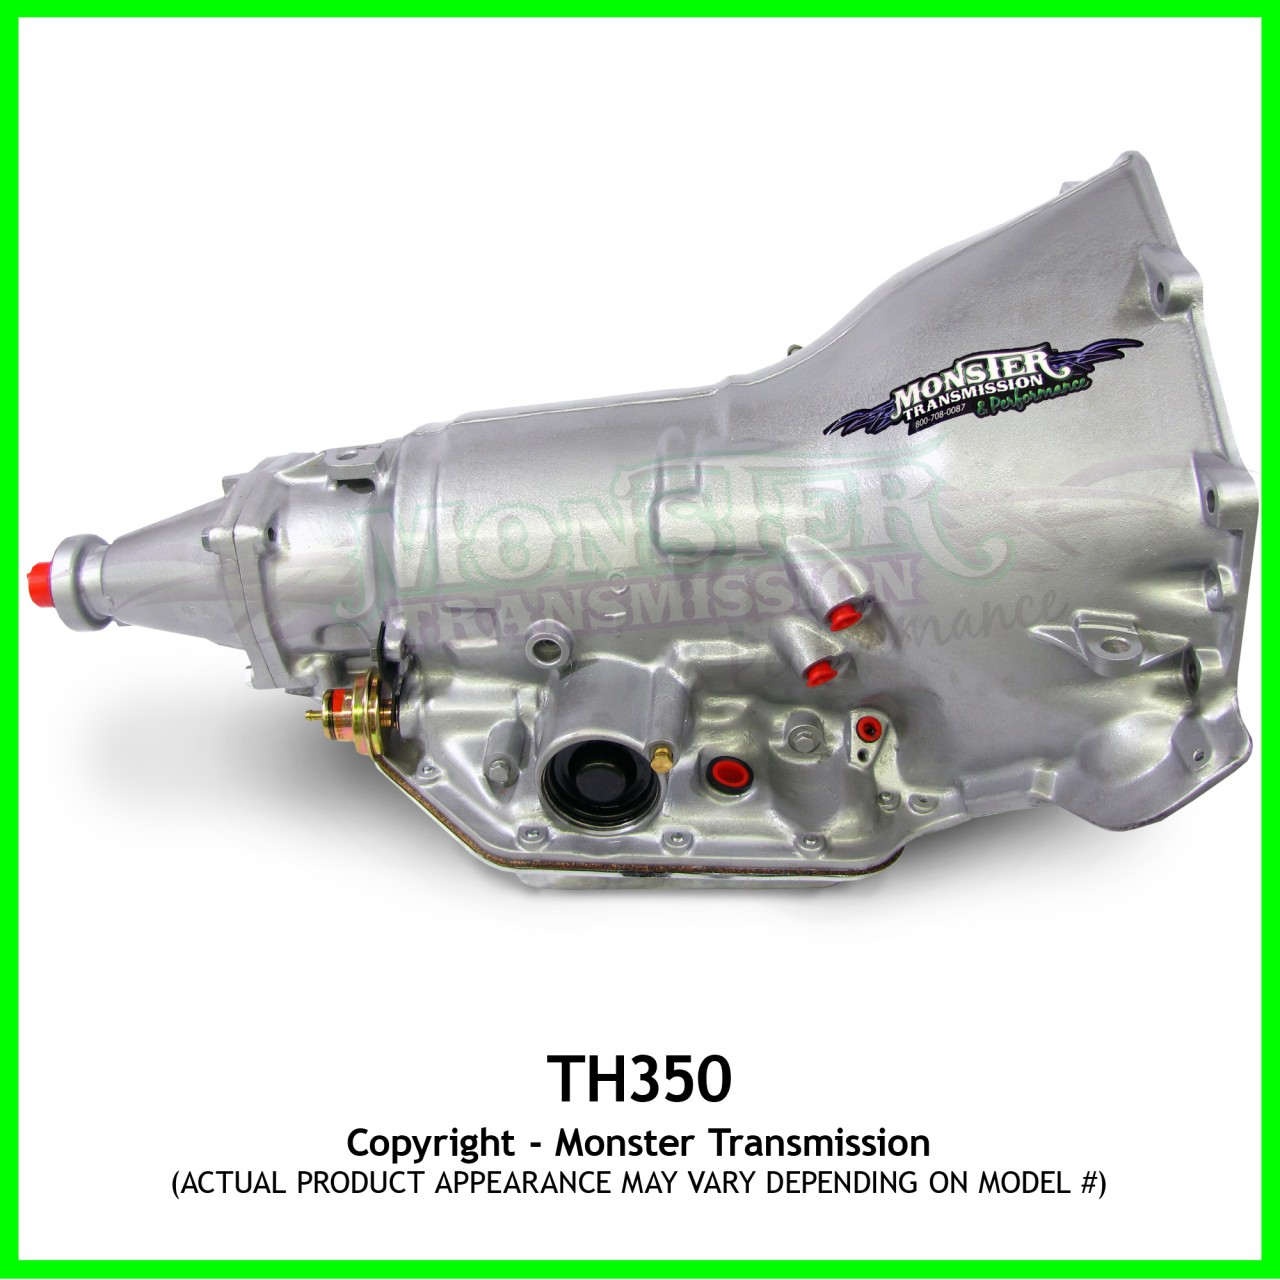 turbo 350 th350 transmission mild 6 quot tail rebuilt th350 700r4 transmission wiring diagram hecho